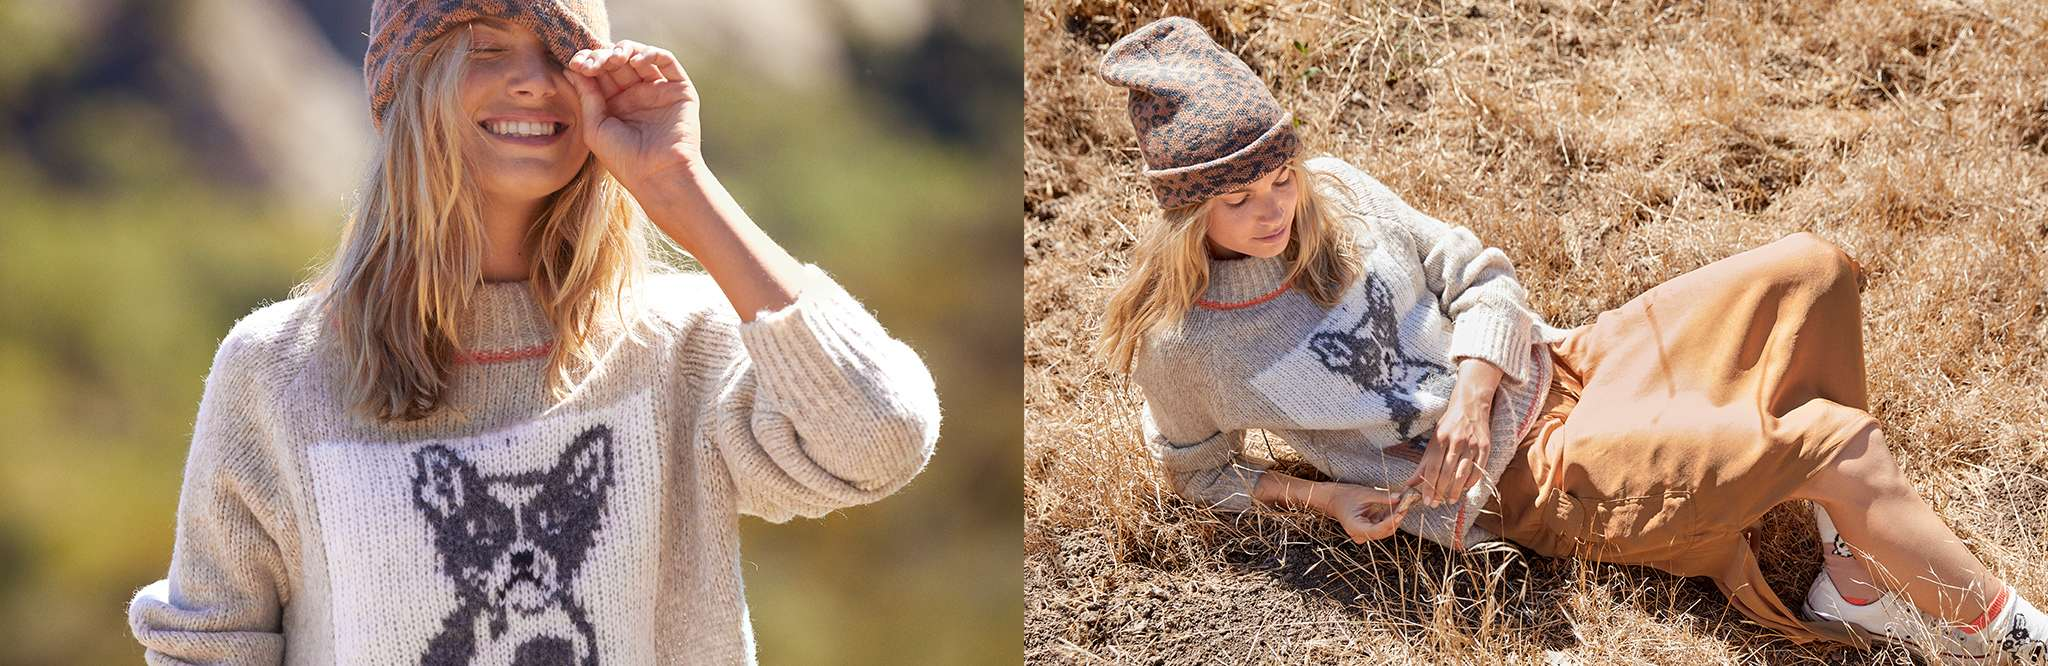 Aerie Sweaters Image